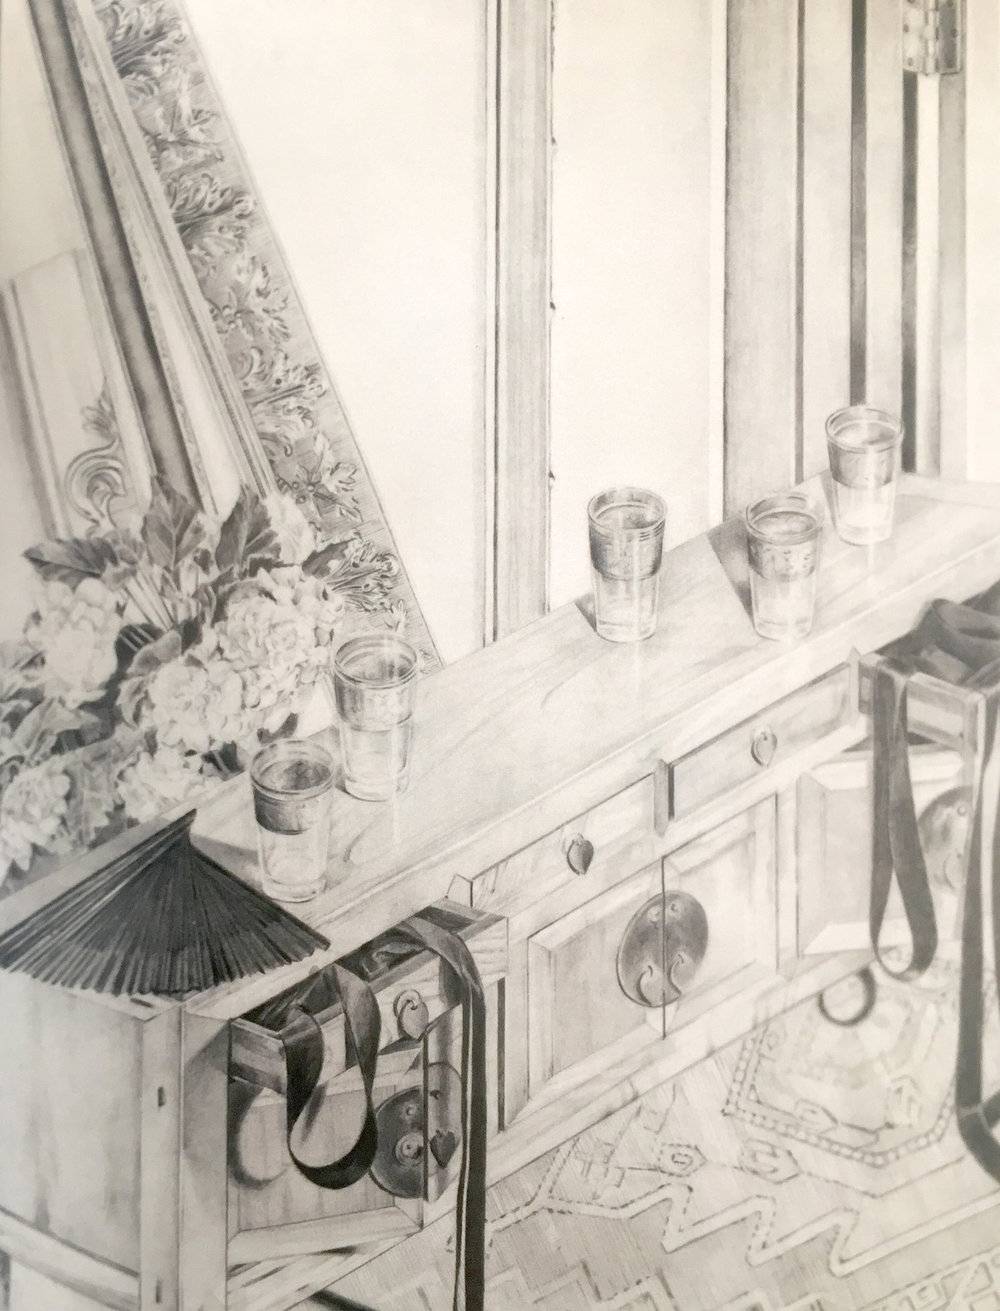 "Carole Doyle Peel, Fan with Ribbons and Water Glasses, 2000, graphite, 40x32"". Collection of the Estate of Carole Doyle Peel."